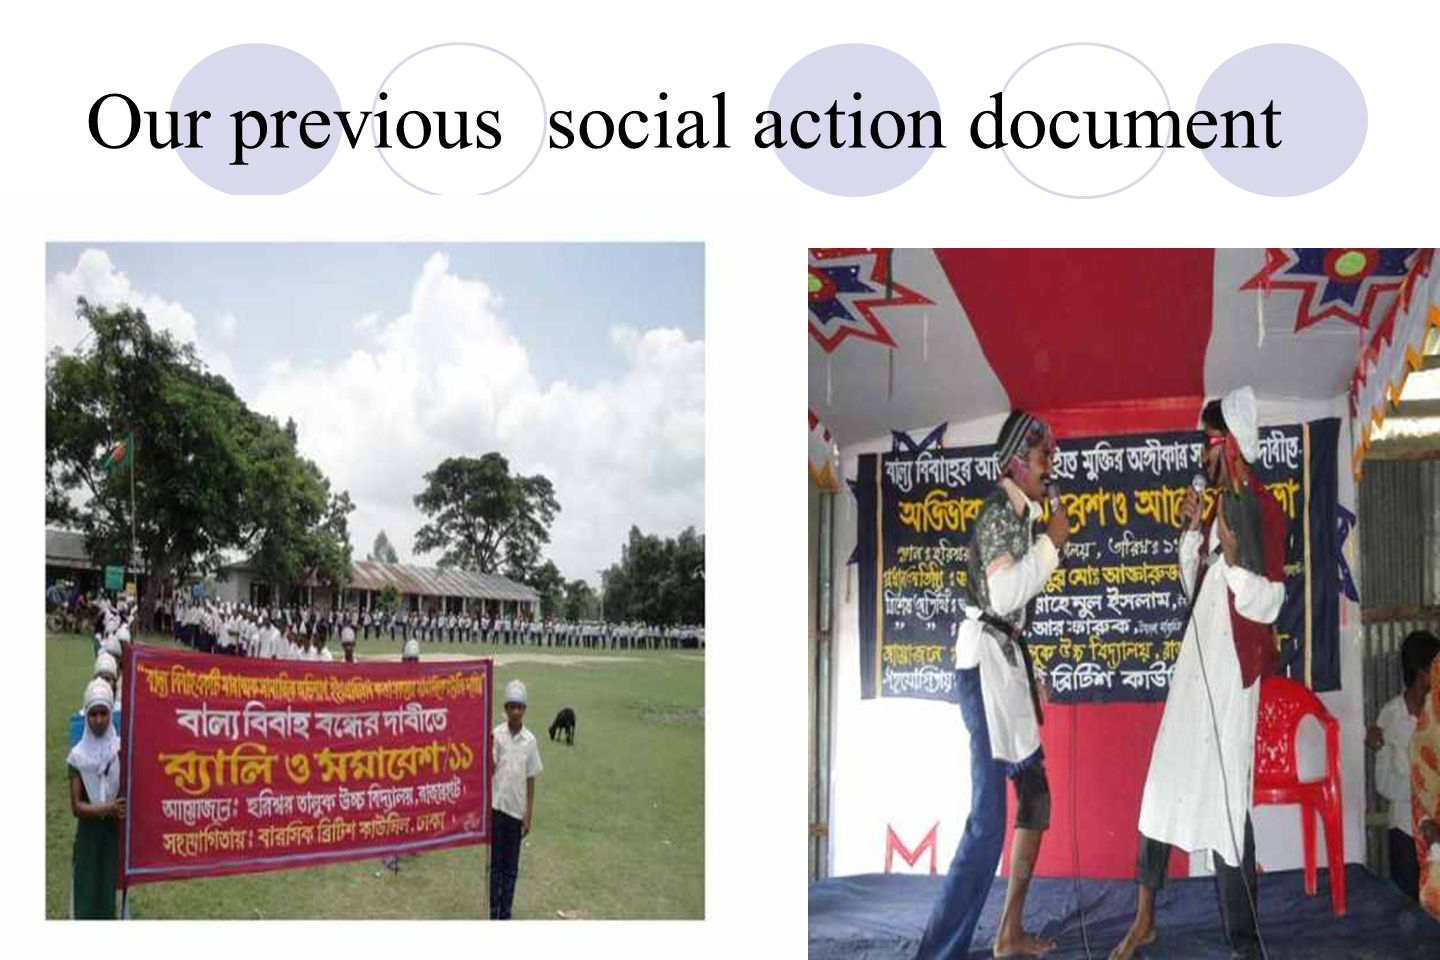 Our previous social action document